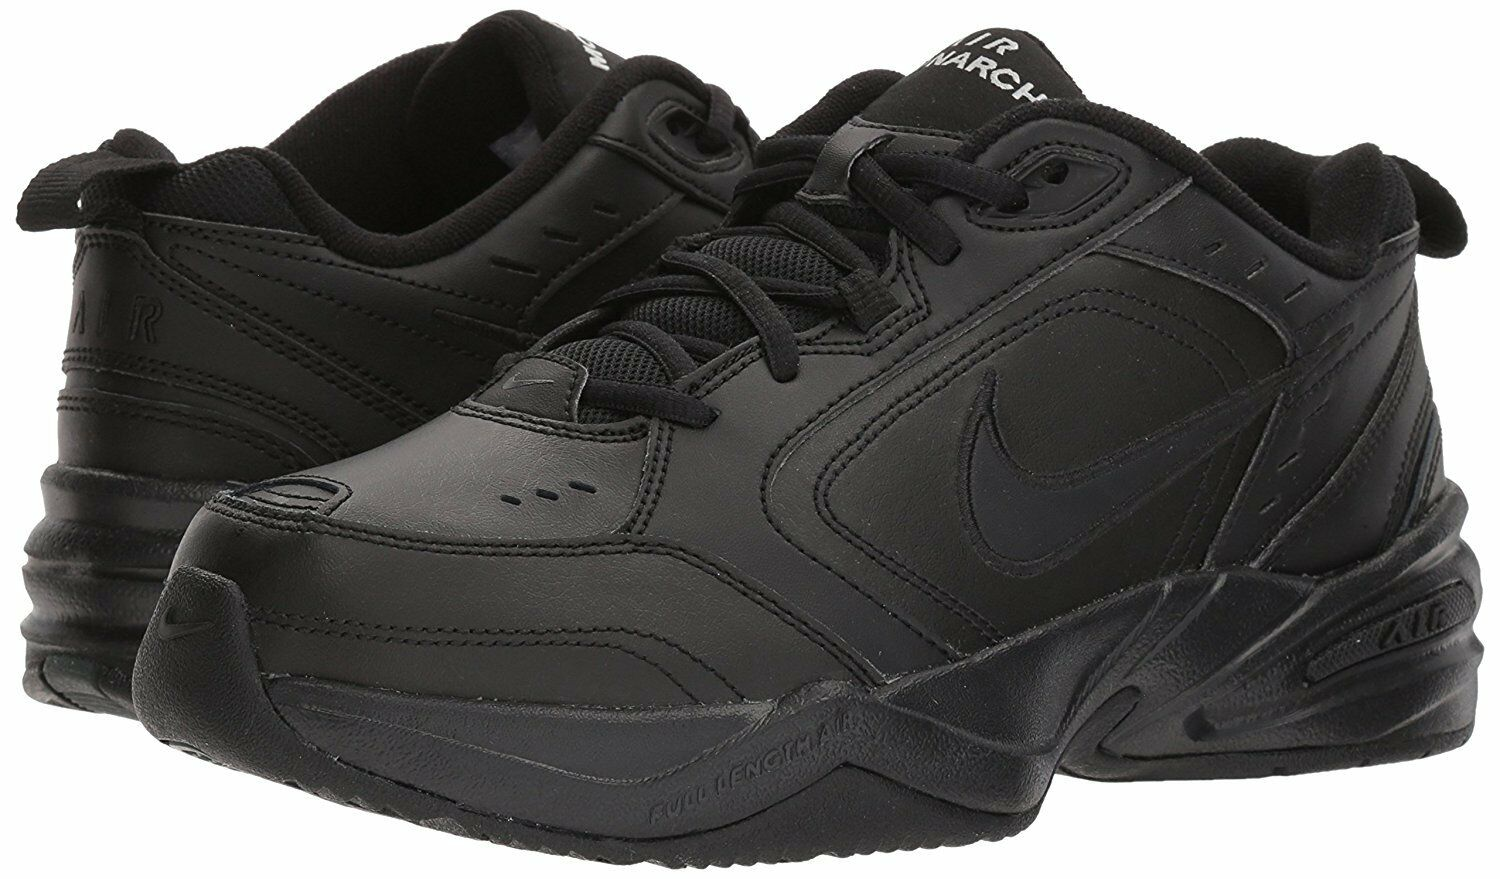 NIKE Men's Air Monarch IV Athletic Cross Trainer Shoe Black Comfortable New shoes for men and women, limited time discount